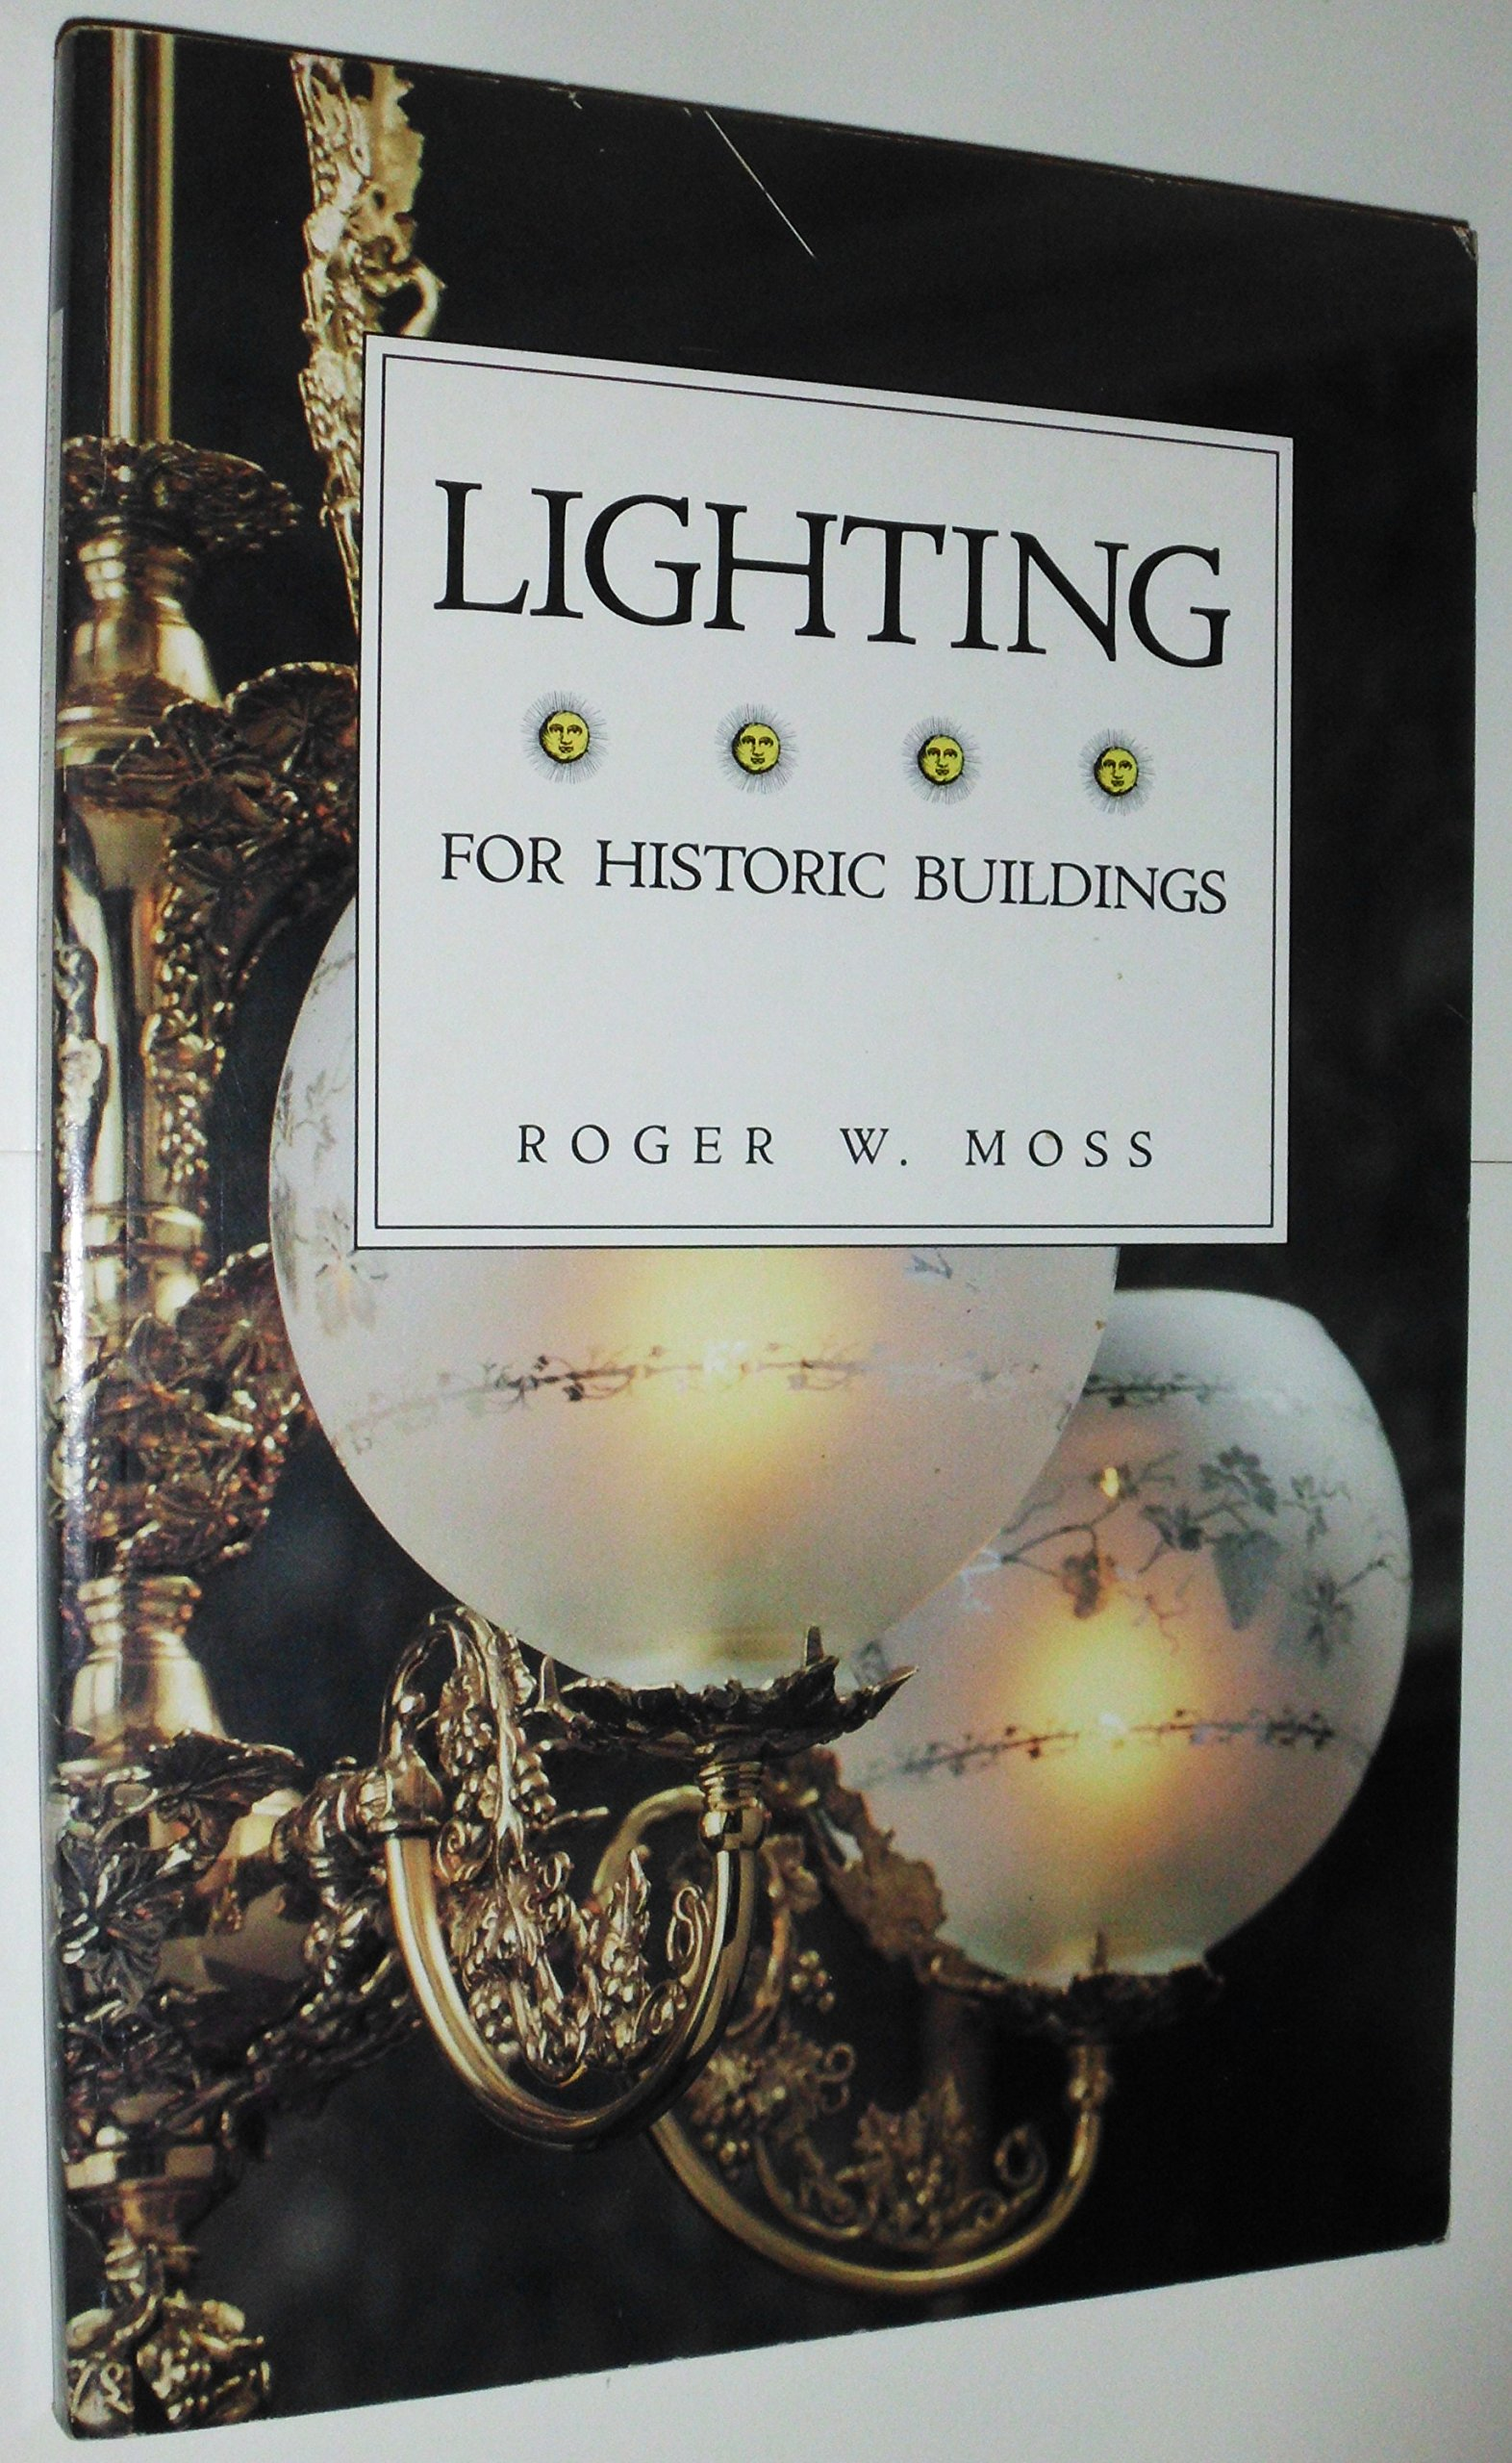 Lighting for historic buildings: A guide to selecting reproductions